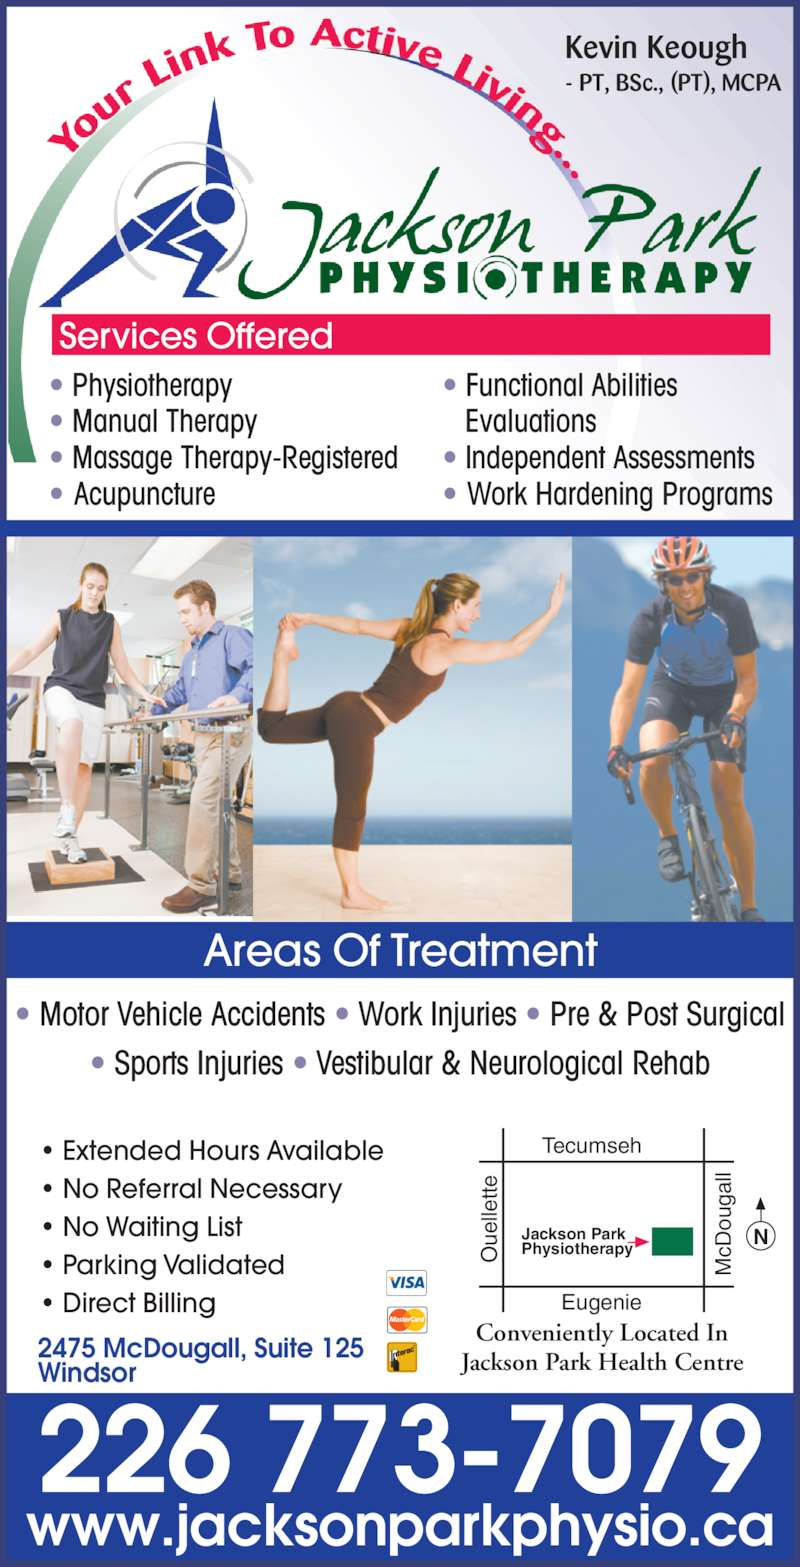 Jackson Park Physiotherapy (519-250-5775) - Display Ad - ? Motor Vehicle Accidents ? Work Injuries ? Pre & Post Surgical ? Sports Injuries ? Vestibular & Neurological Rehab Areas Of Treatment Kevin Keough - PT, BSc., (PT), MCPA ? Physiotherapy ? Manual Therapy ? Massage Therapy-Registered ? Acupuncture ? Functional Abilities     Evaluations ? Independent Assessments ? Work Hardening Programs Conveniently Located In Jackson Park Health Centre cD 226 773-7079 2475 McDougall, Suite 125 Windsor www.jacksonparkphysio.ca Services Offered tte Tecumseh Eugenie NJackson ParkPhysiotherapy ? Extended Hours Available ? No Referral Necessary ou ga ll ue lle ? No Waiting List ? Parking Validated ? Direct Billing